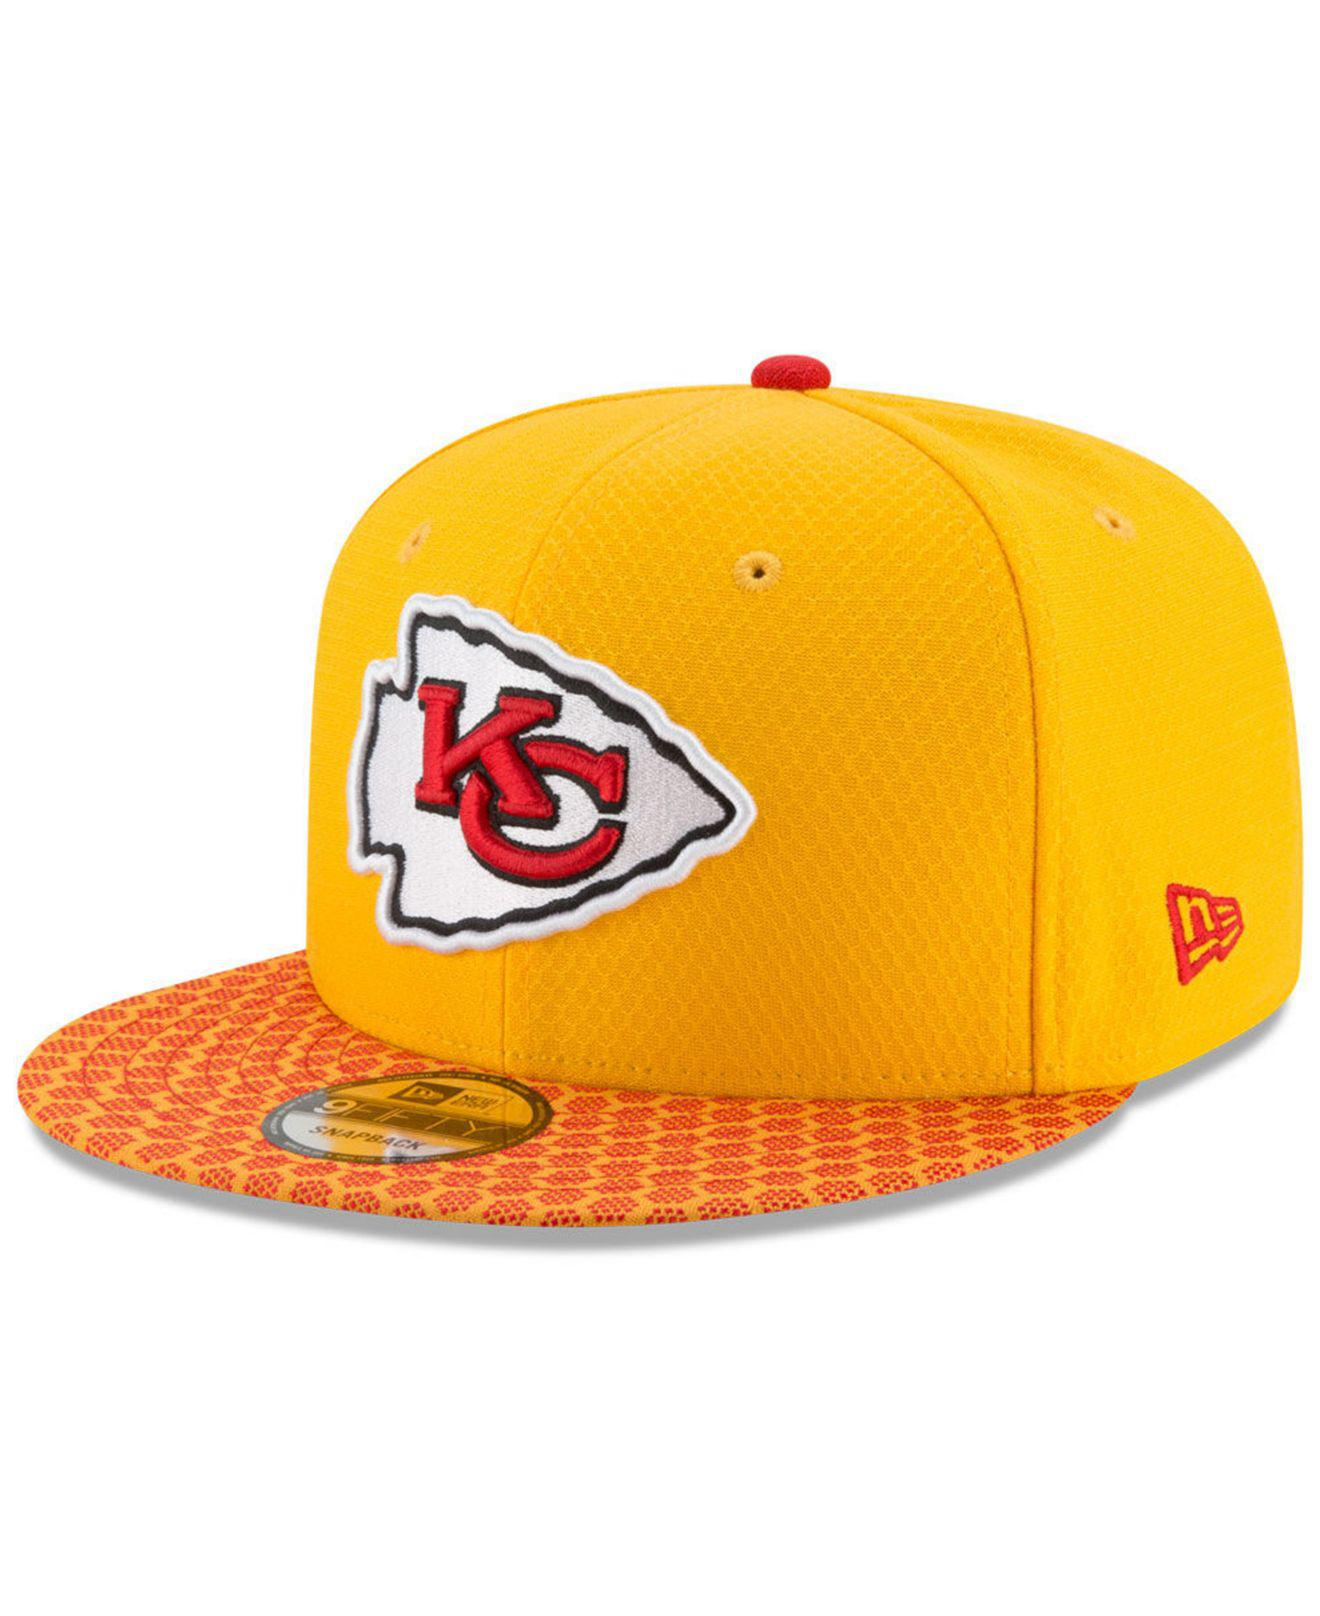 separation shoes a0cd4 df4bf Lyst - Ktz Kansas City Chiefs Sideline 9fifty Snapback Cap in Yellow ...